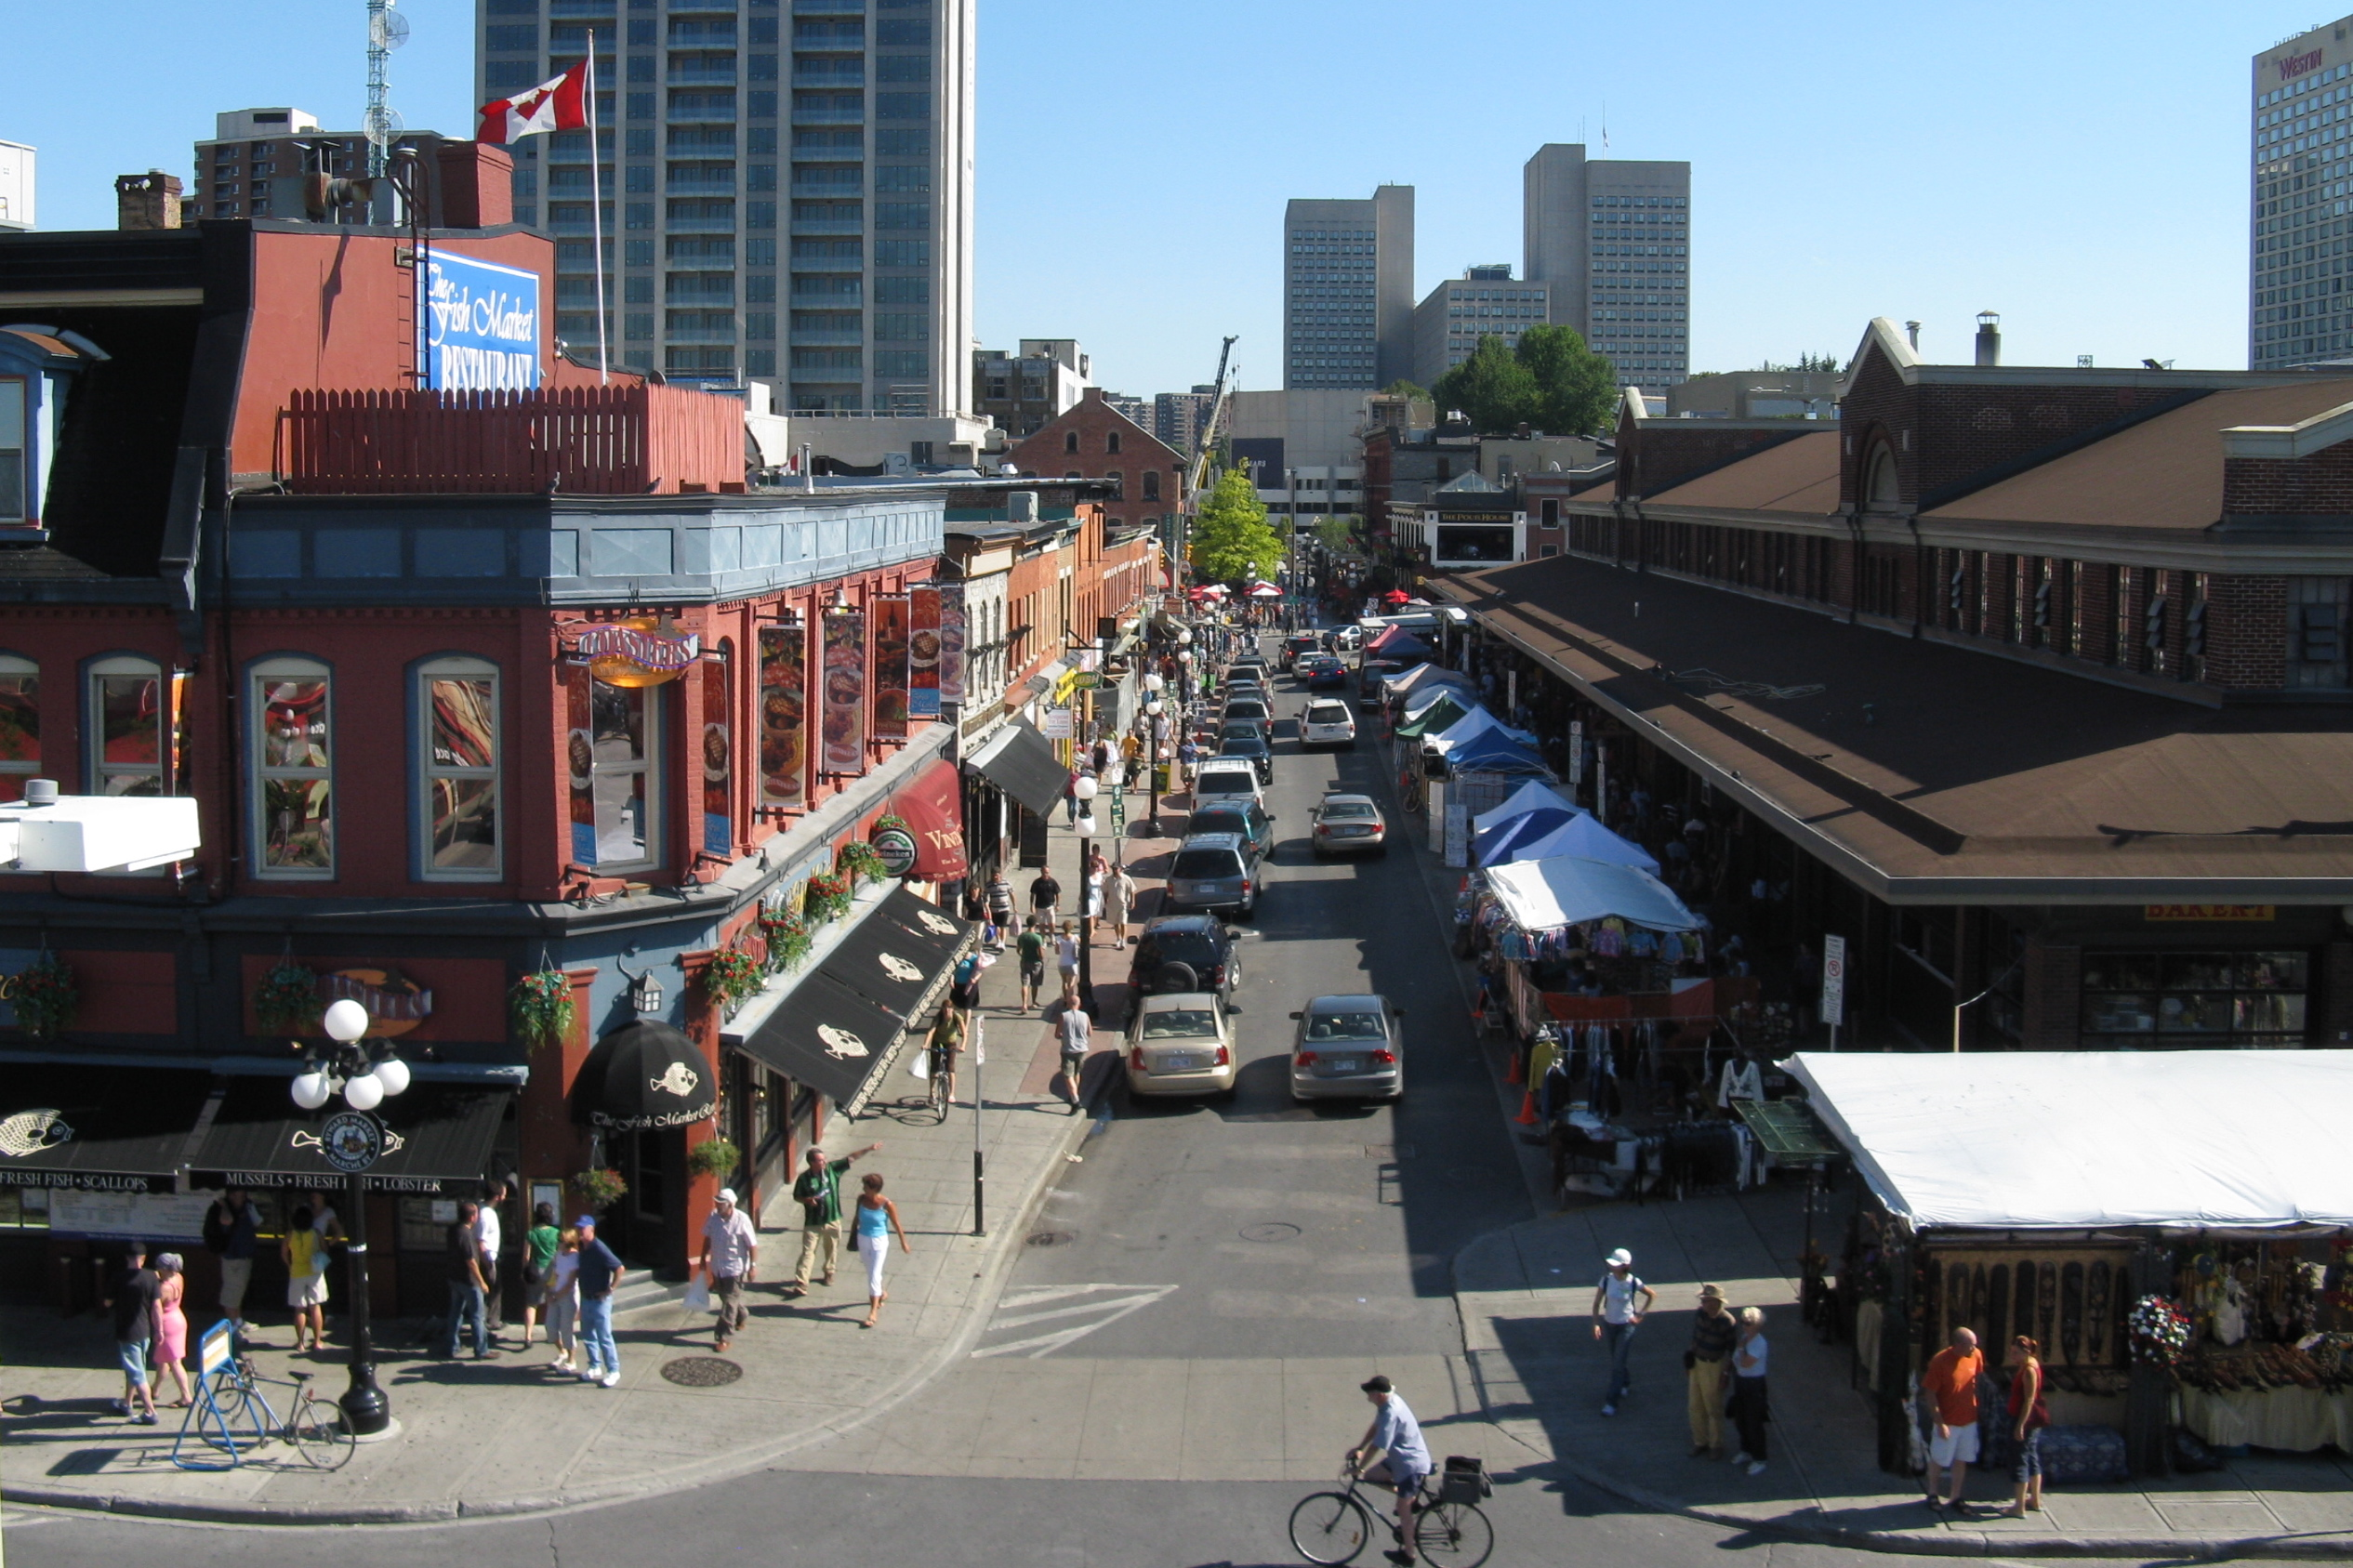 The Byward Market, things to do in ottawa